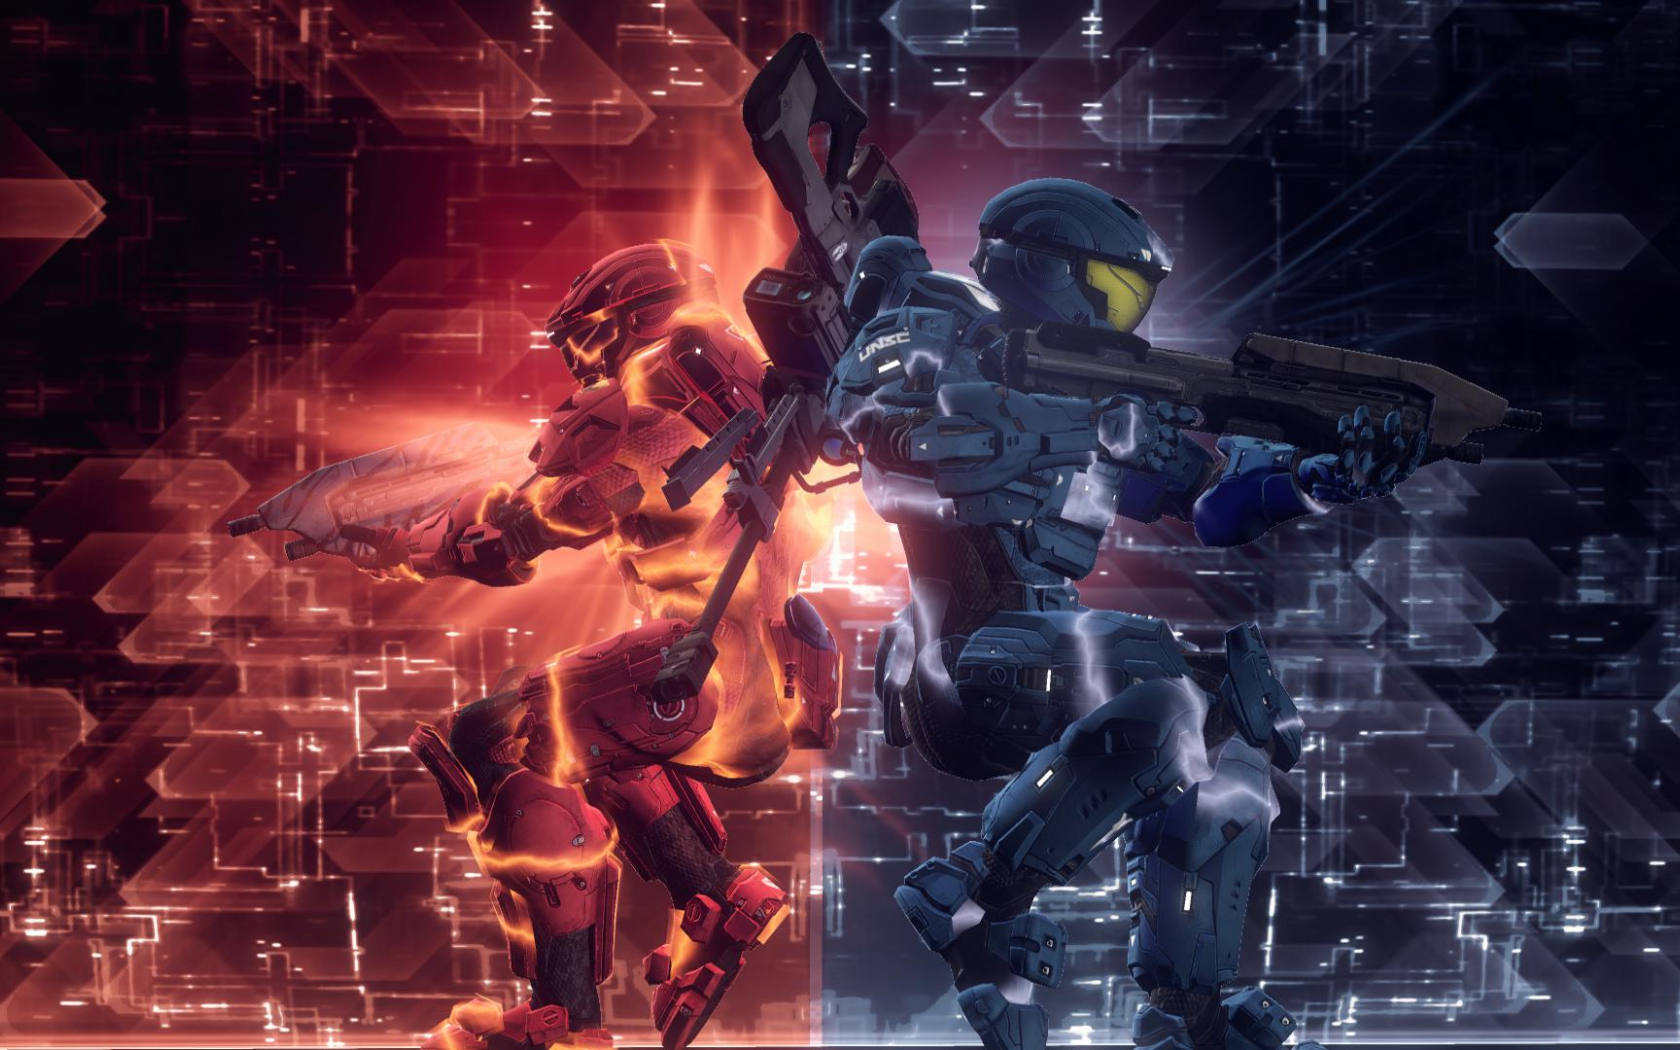 Free Download Red Vs Blue Backgrounds Sf Wallpaper 1920x1080 For